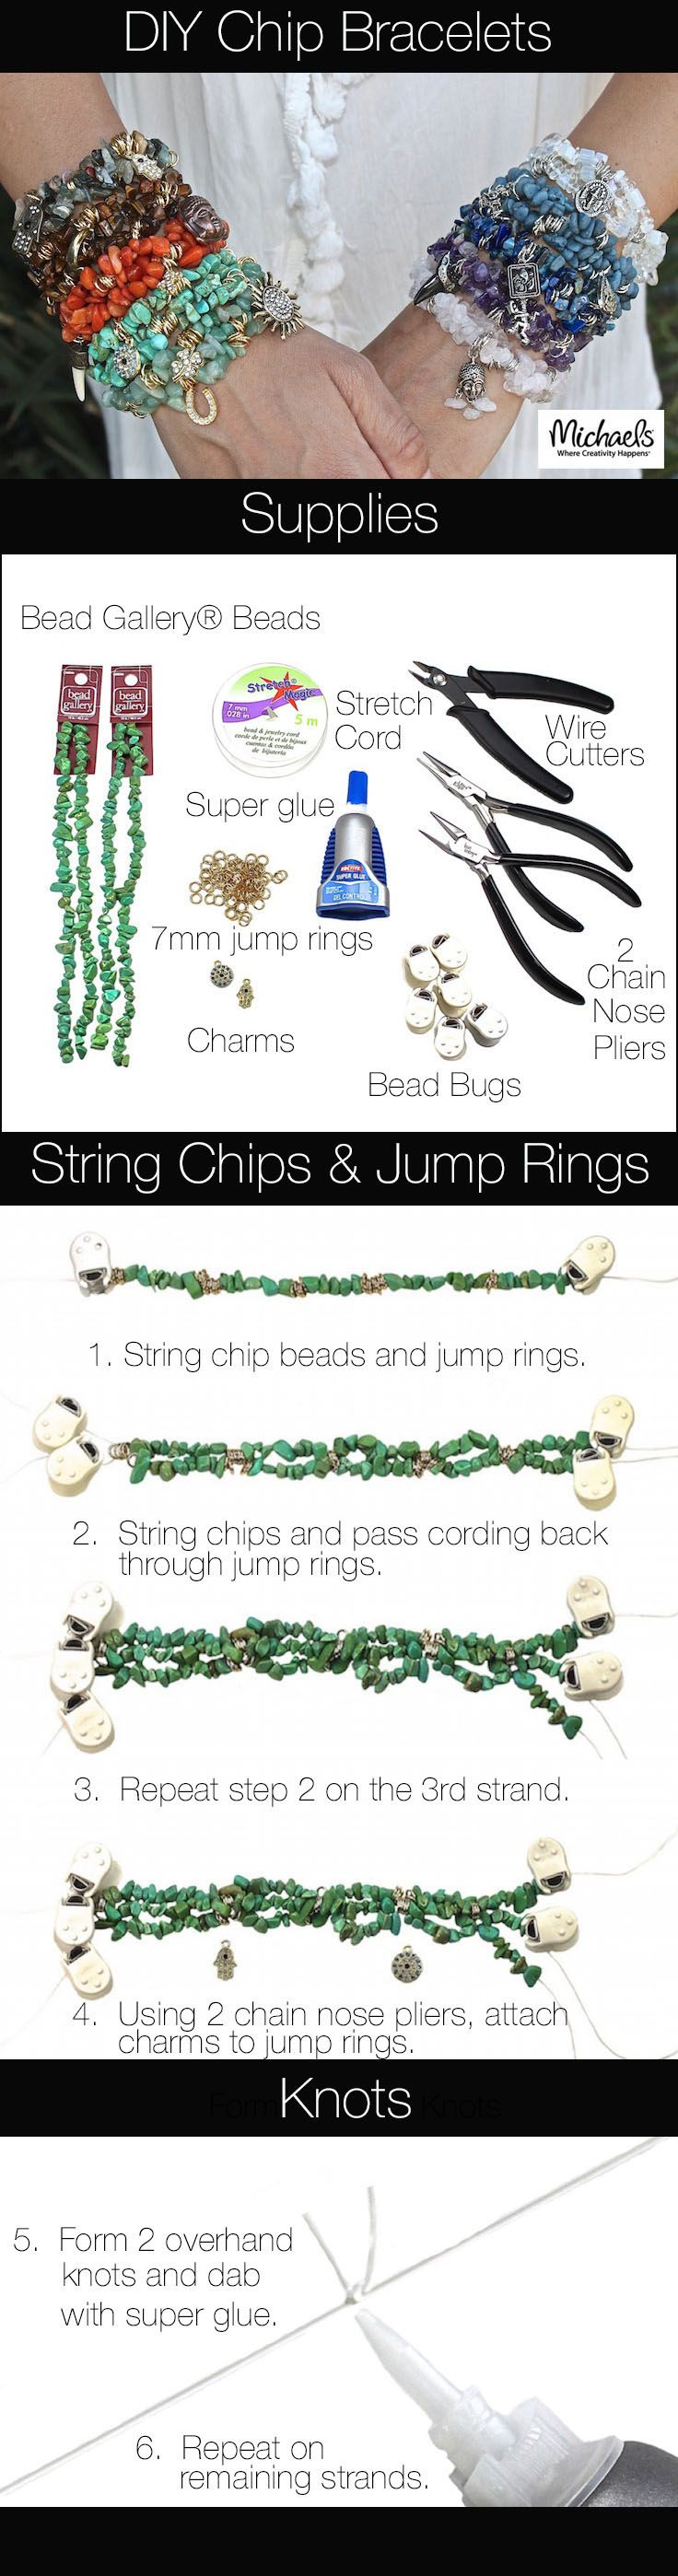 Create trendy stackable DIY Chips Bracelets with this easy tutorial